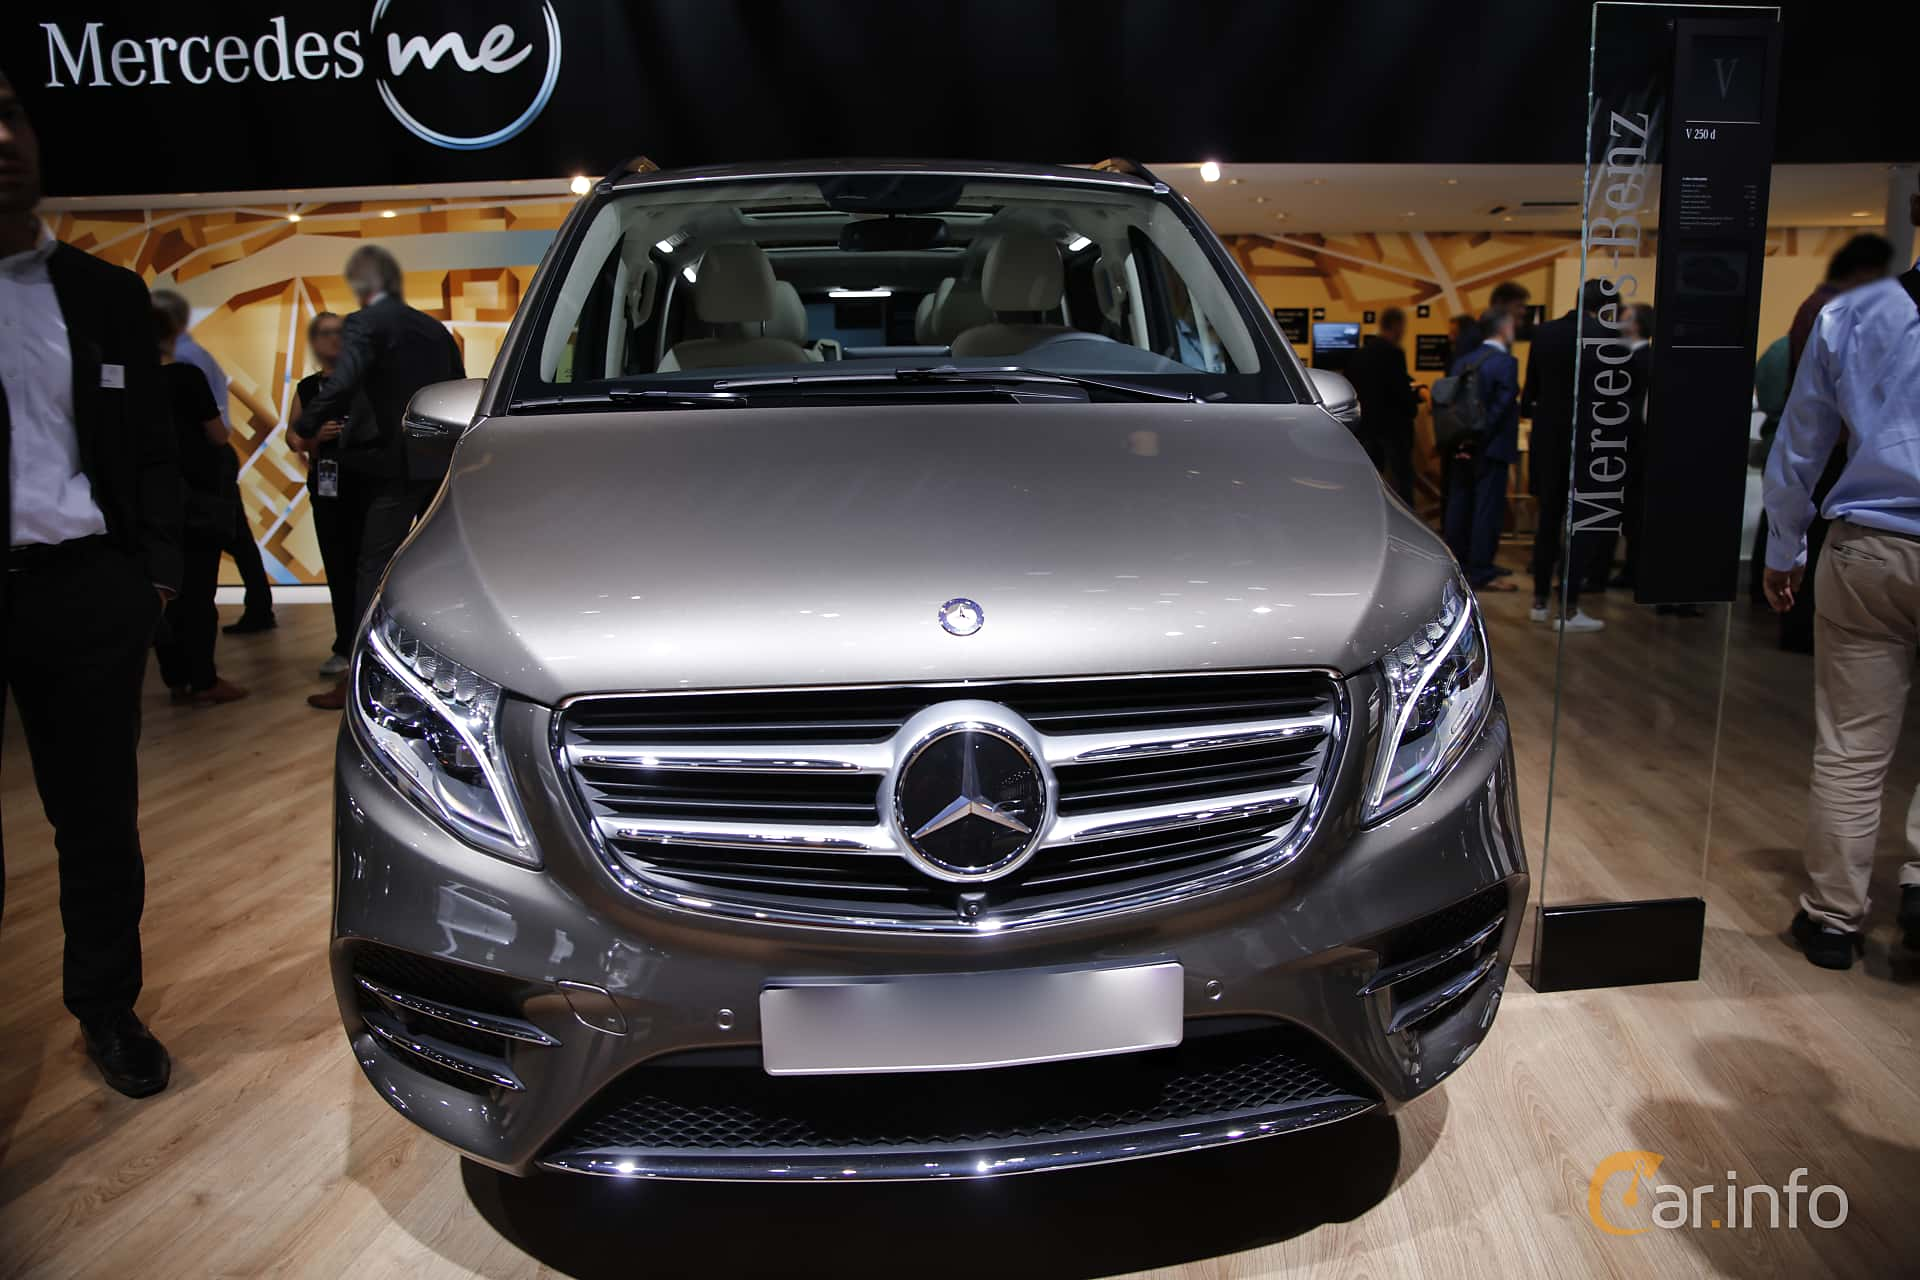 Mercedes benz v 250 d 2 2 7g tronic plus 190hp 2017 at for Mercedes benz viano